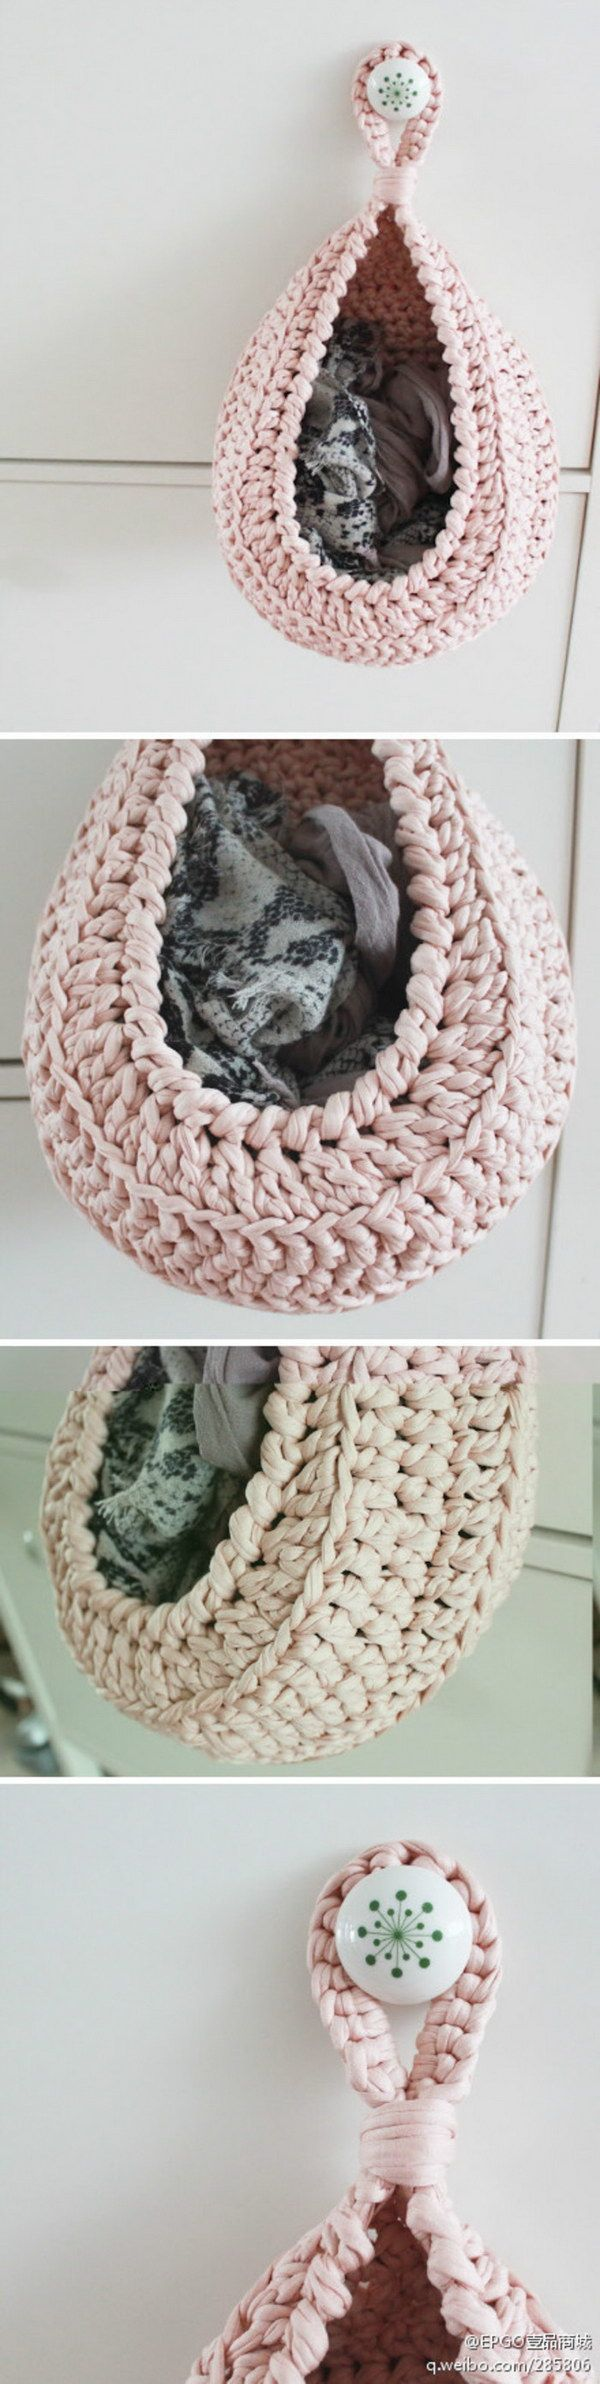 30+ Easy Crochet Projects with Free Patterns for Beginners | Crochet ...